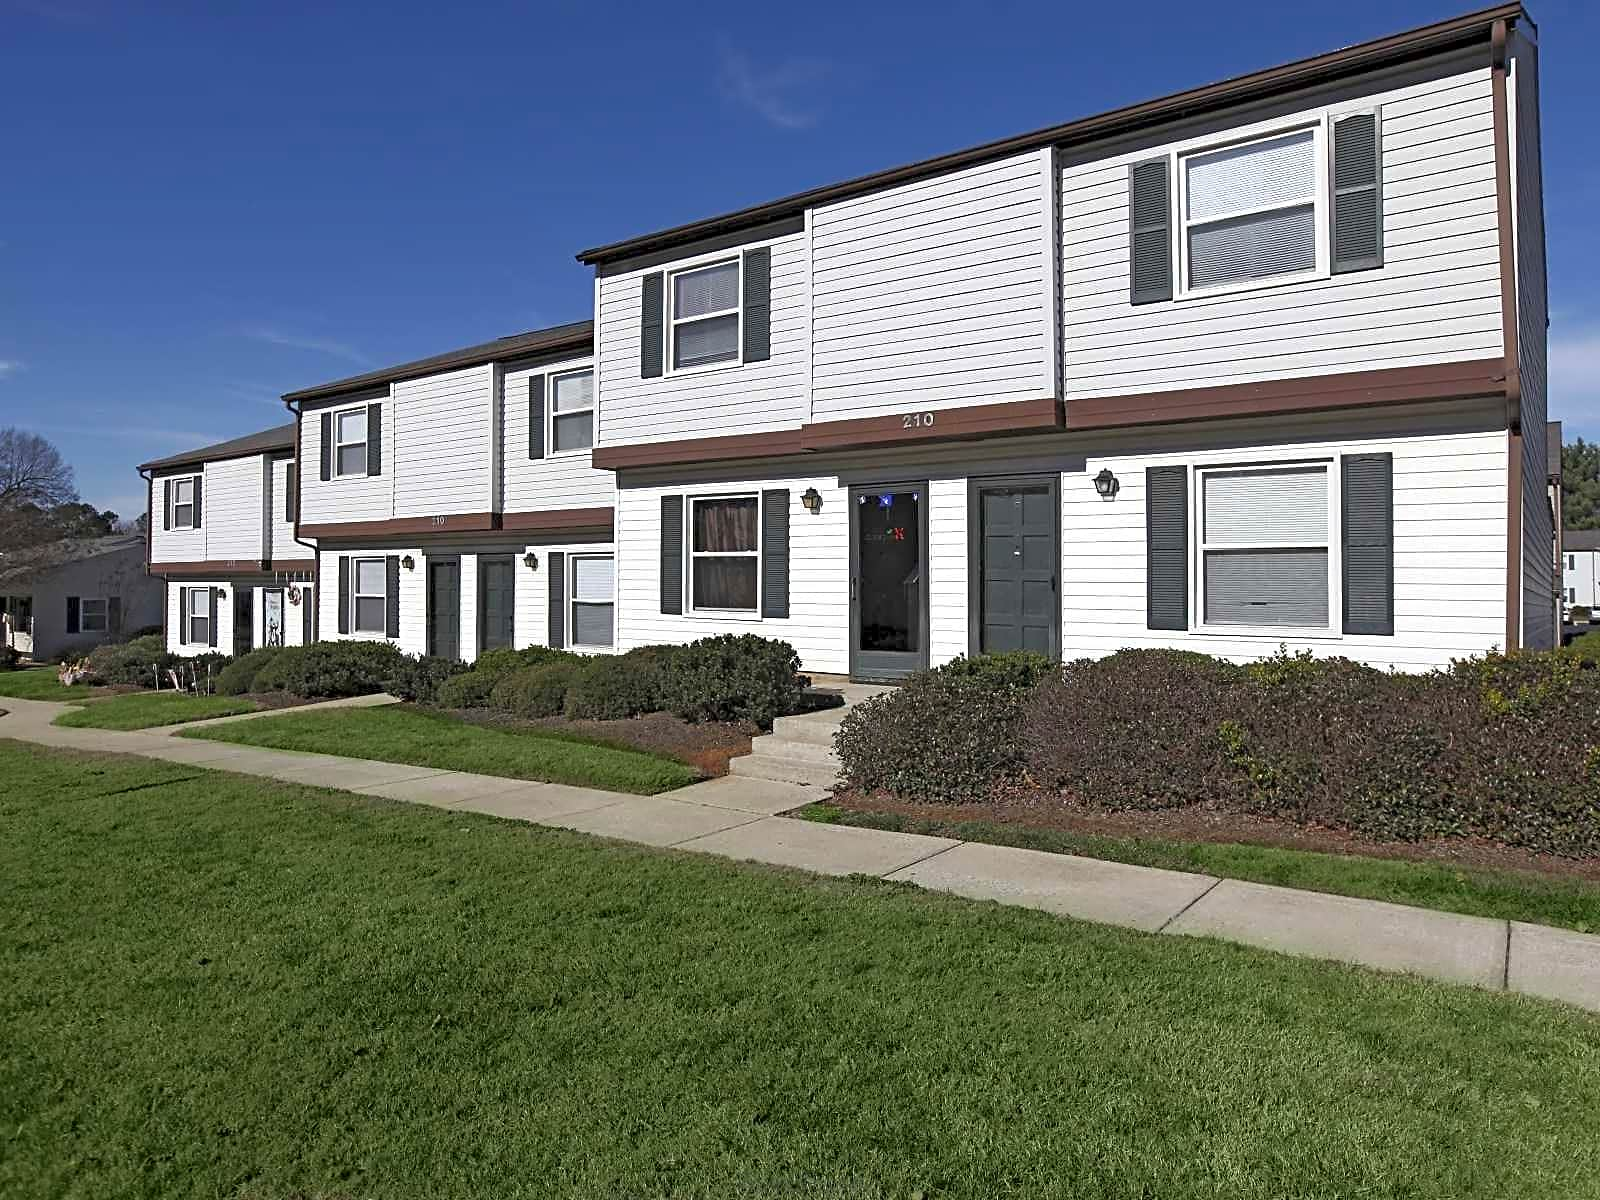 Apartments Near Catawba Fairview Village for Catawba College Students in Salisbury, NC